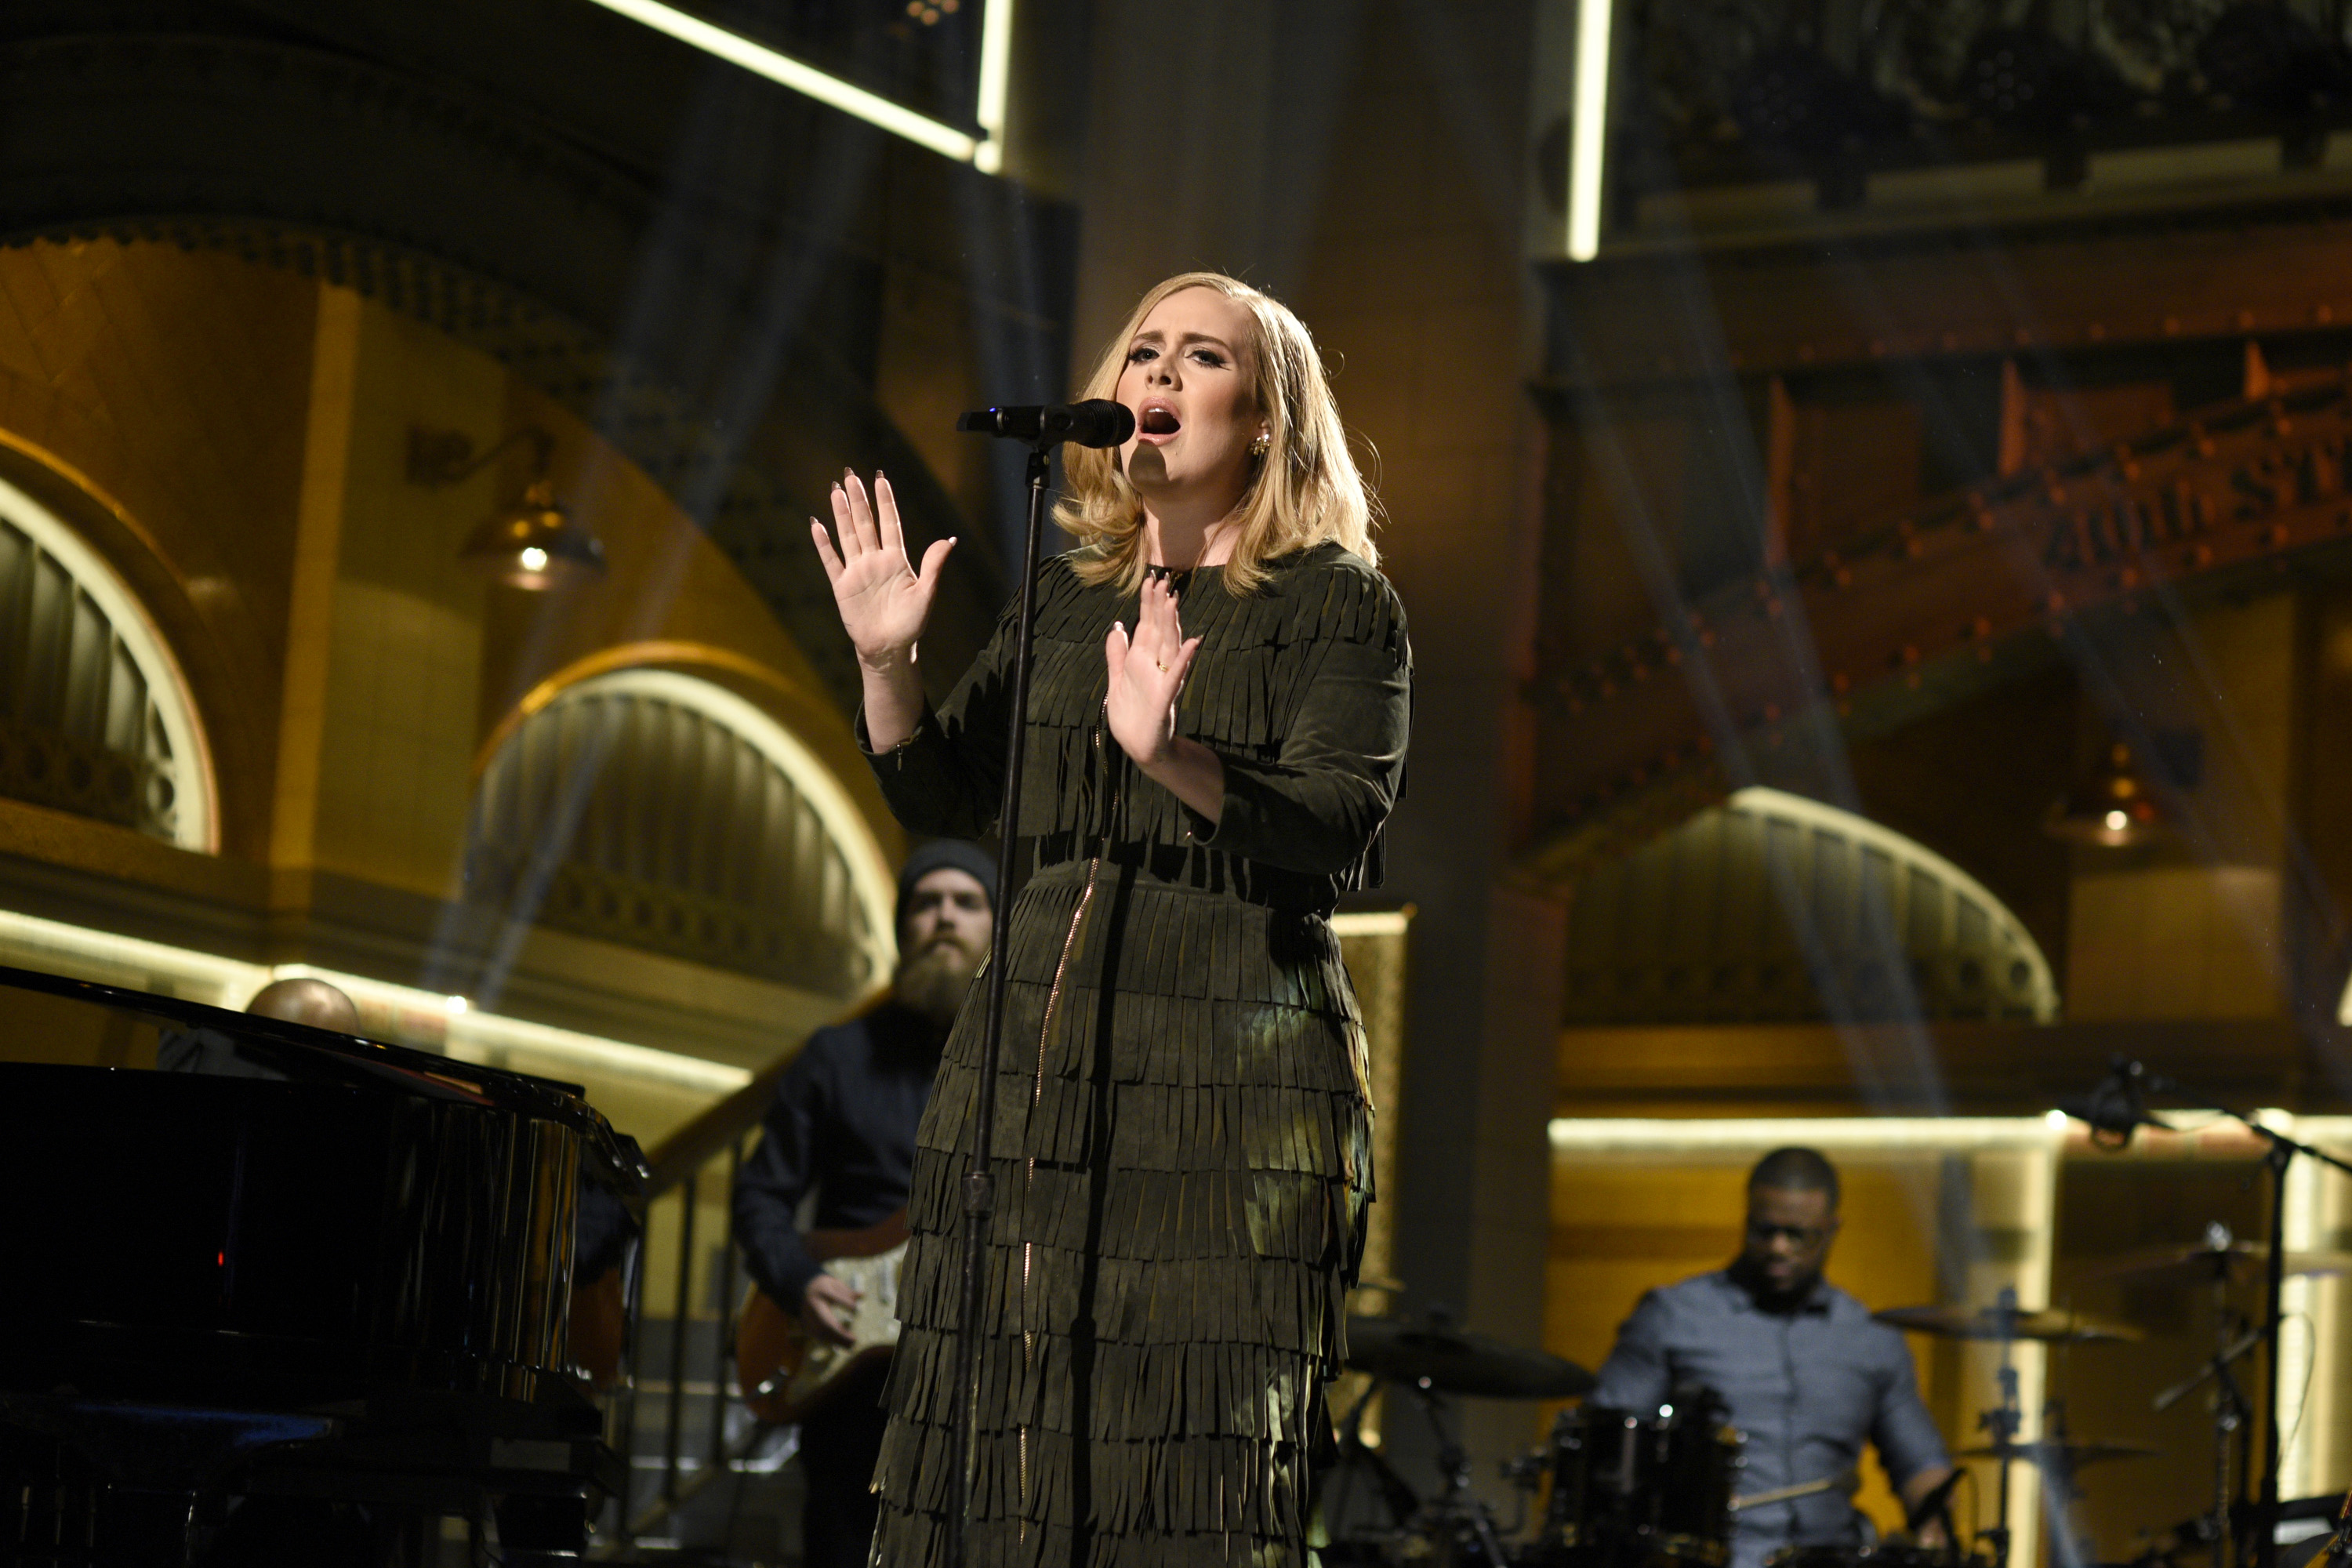 Adele performs during Saturday Night Live on Nov. 21, 2015 in New York City.